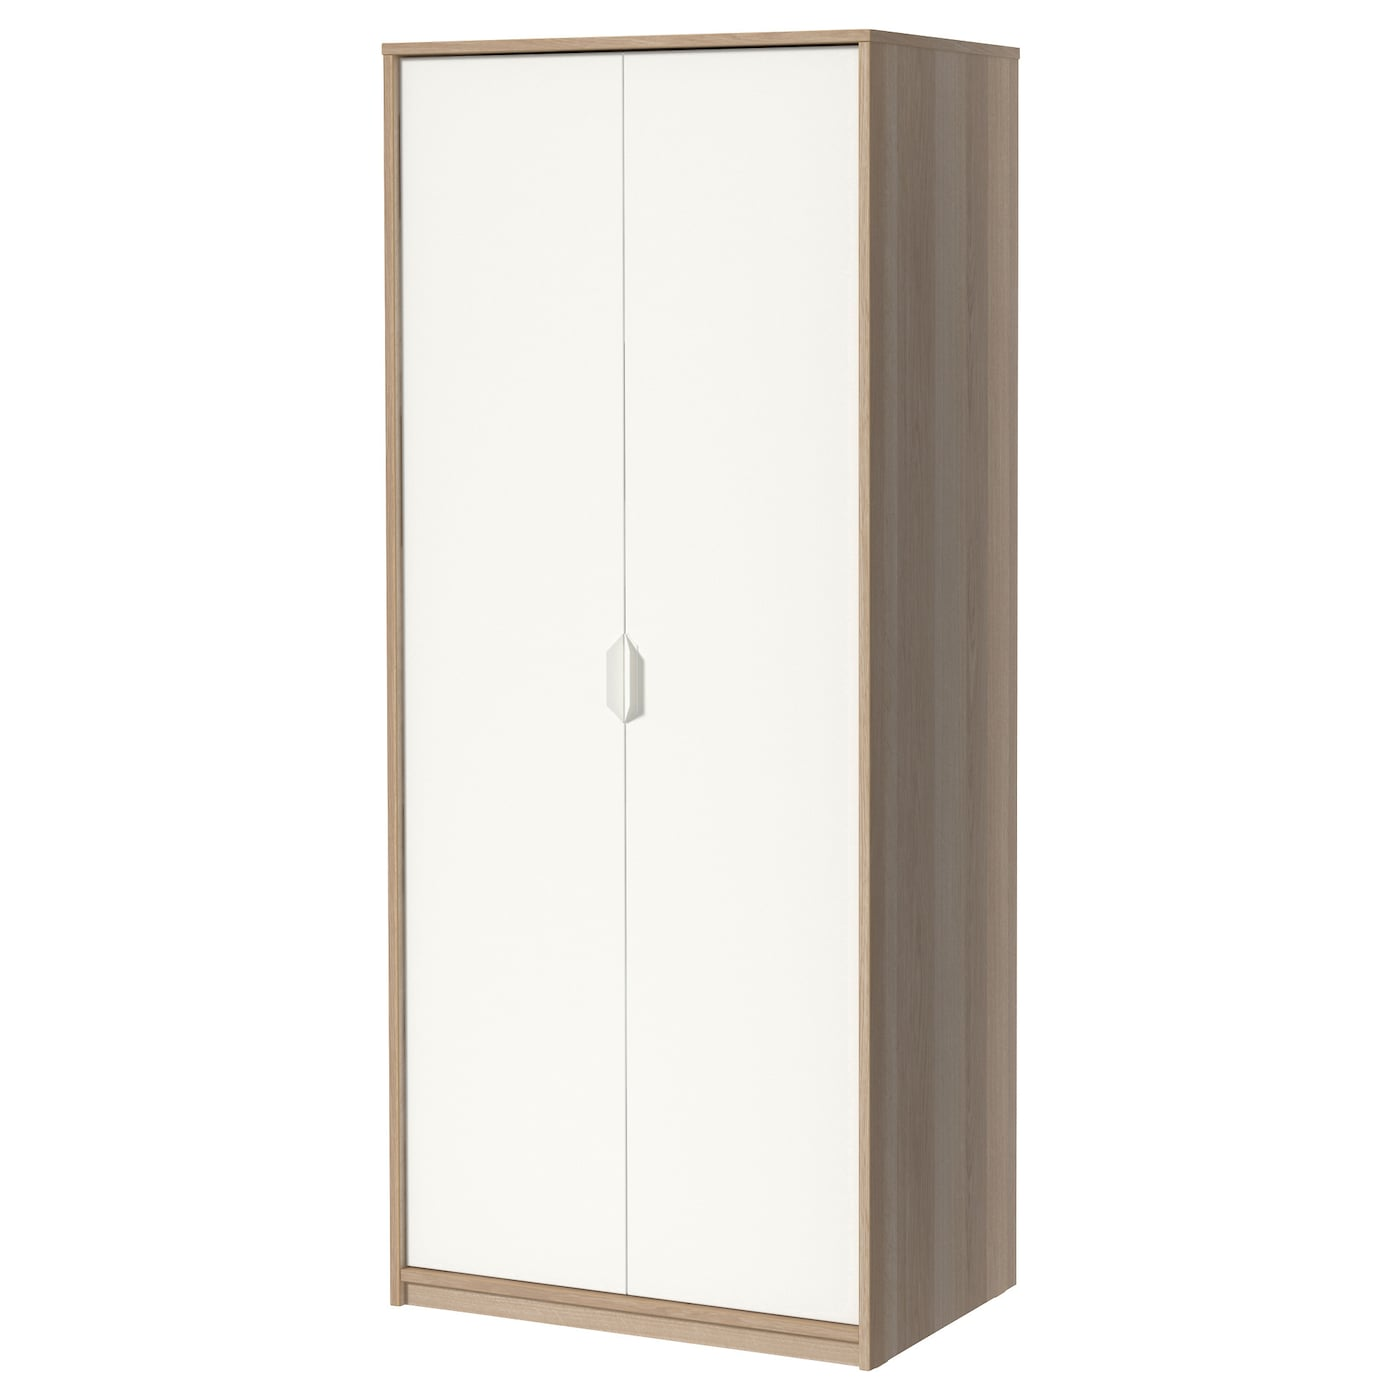 kleiderschrank 30 cm tief ikea pax wardrobe 10 year. Black Bedroom Furniture Sets. Home Design Ideas